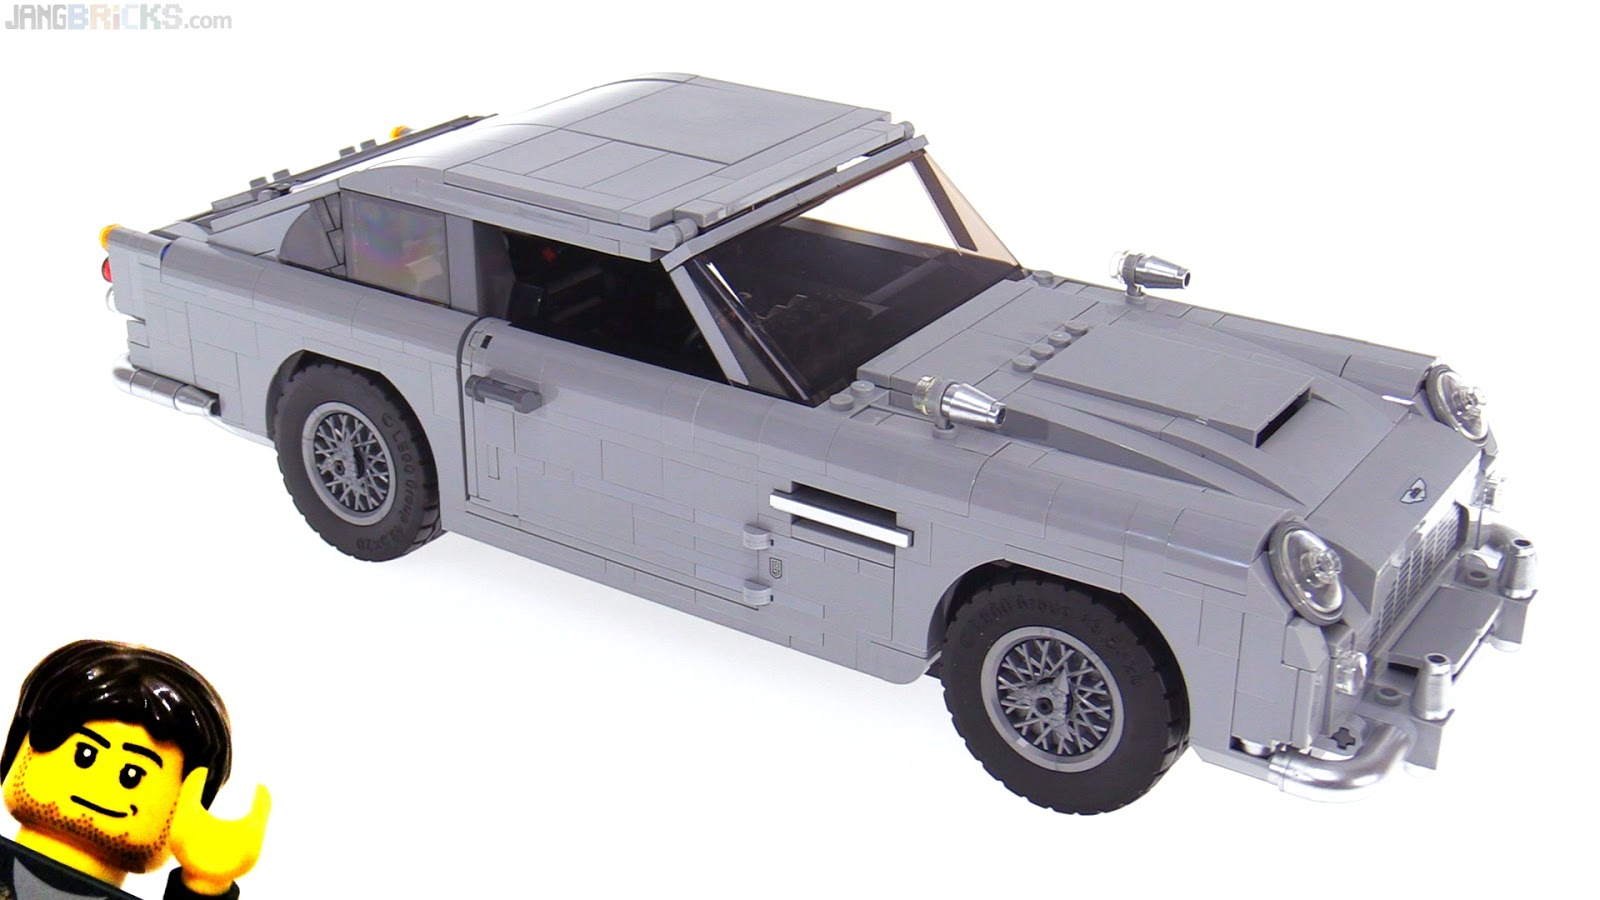 Lego Creator James Bond Aston Martin Db5 Review